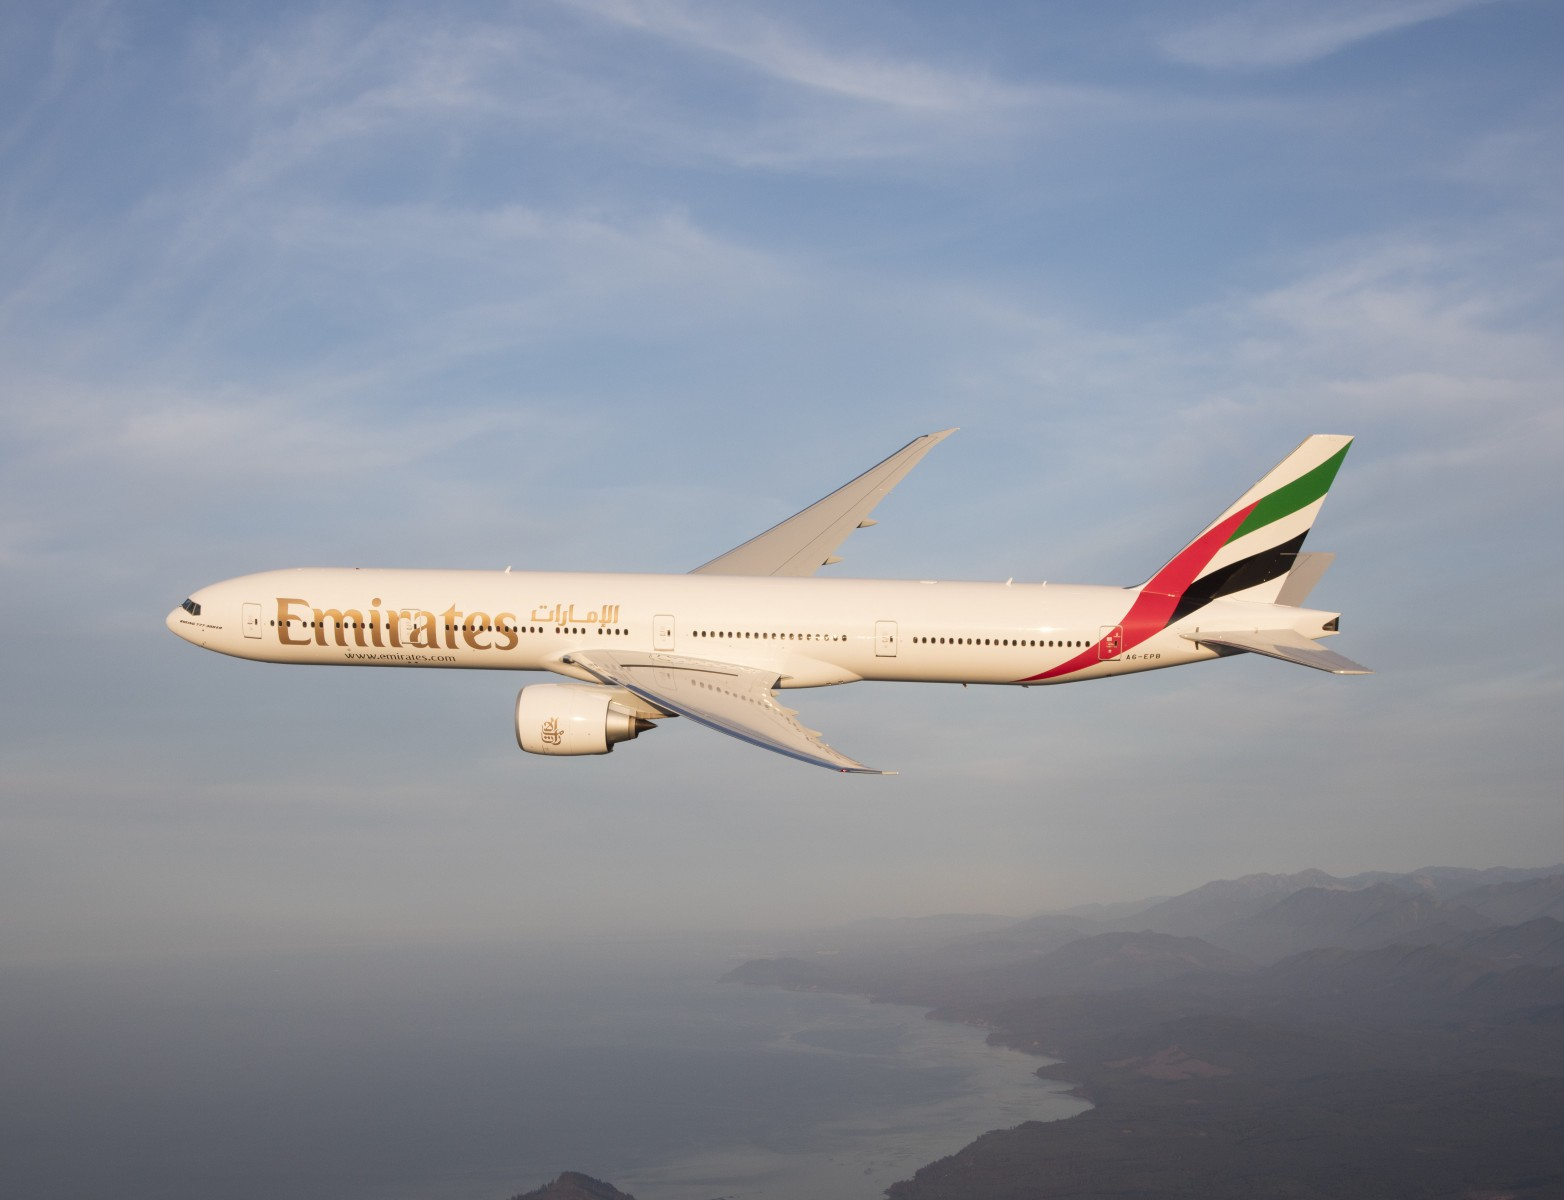 Emirates is offering UAE travellers a chance to plan early and book their next trip to the Philippines.